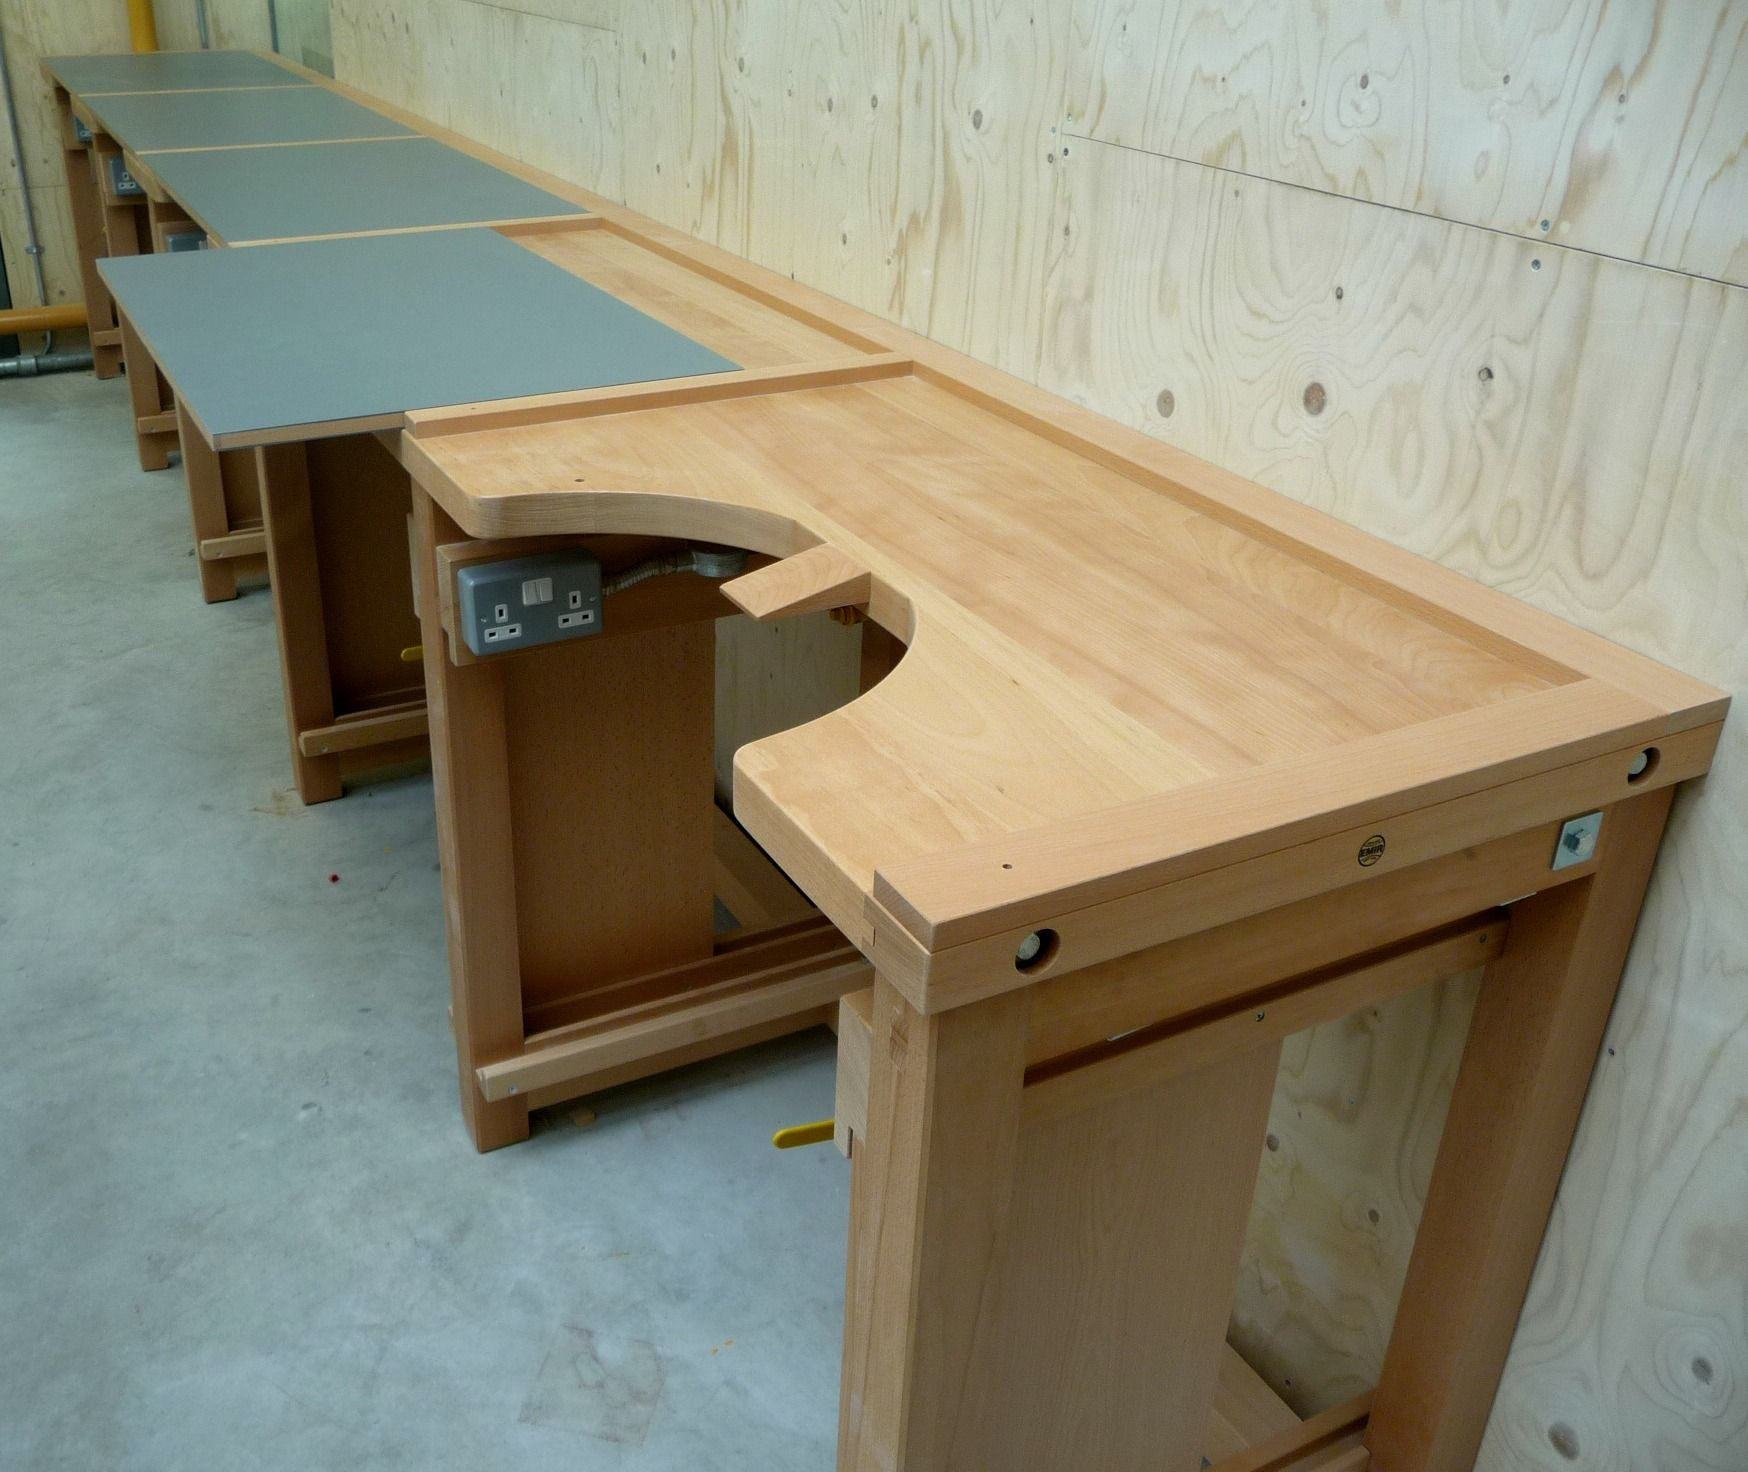 Jewellers Bench Designed With A Removable Square Top Diy Jewelry Making Pinterest Bench